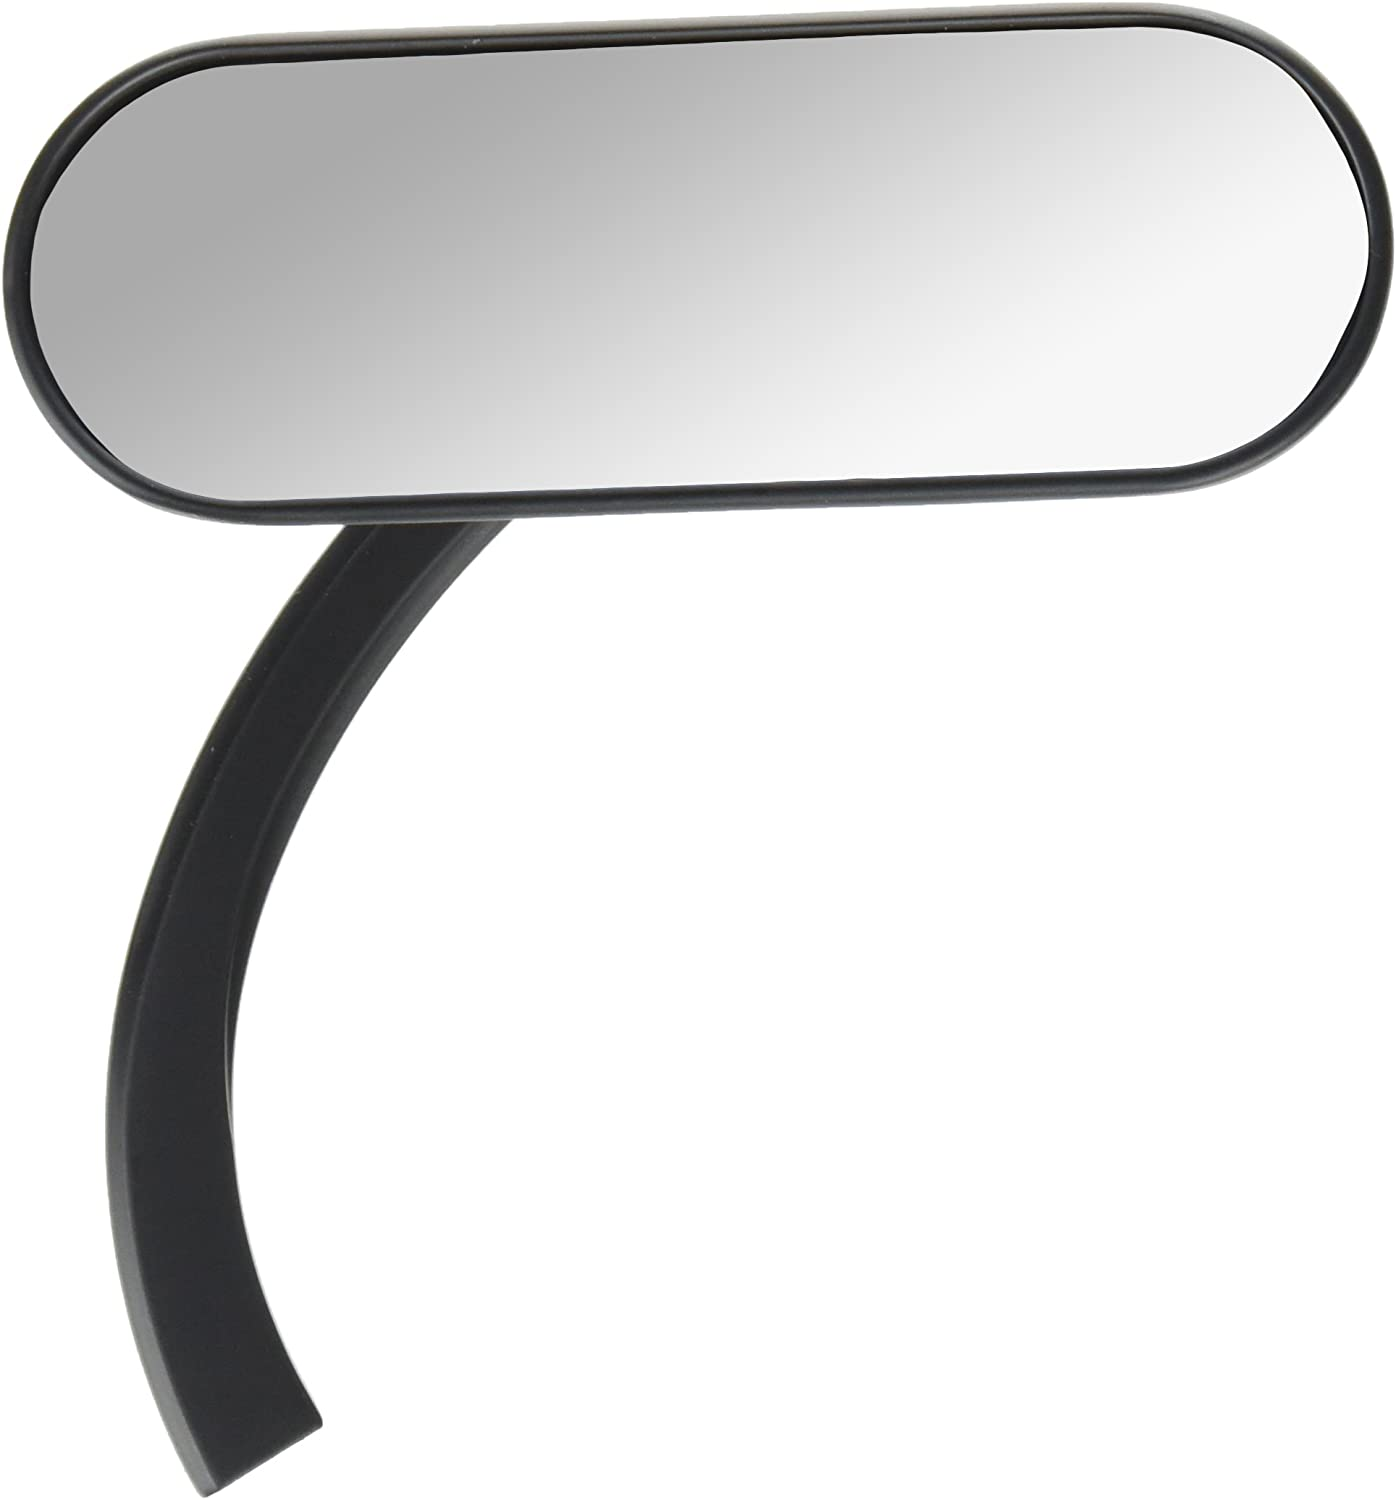 Arlen Ness 13-413 Micro low-pricing Right Mirror Black Max 60% OFF